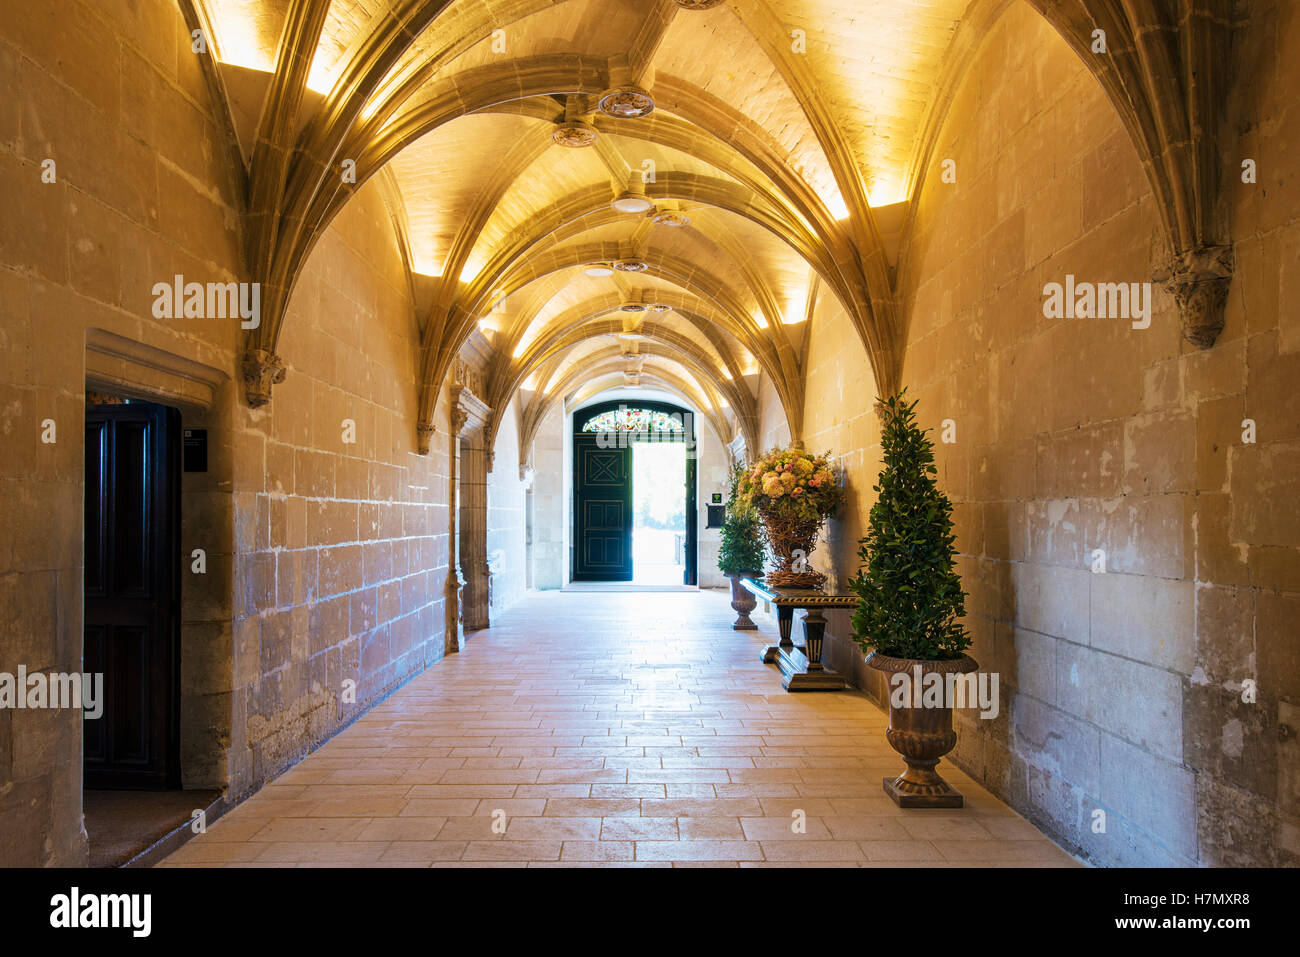 The main entrance hall to Chateau de Chenonceau in the Loire Valley in France - Stock Image